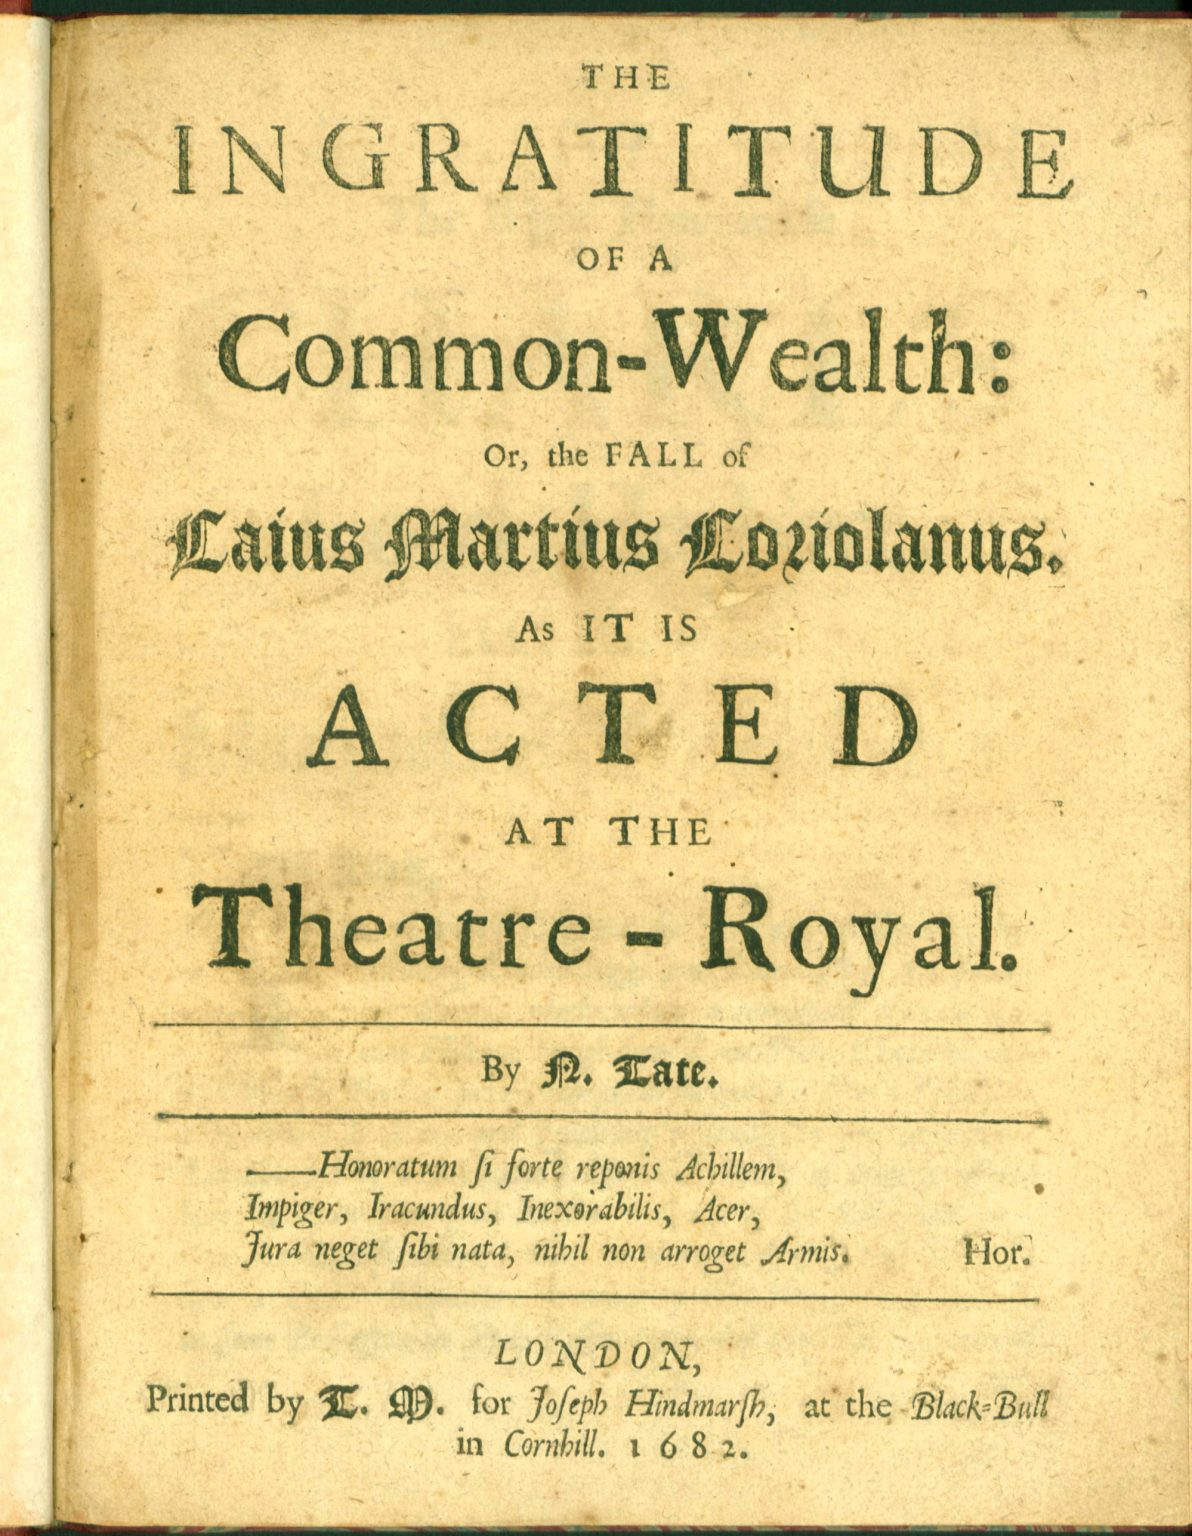 the ingratitude of a common-wealth